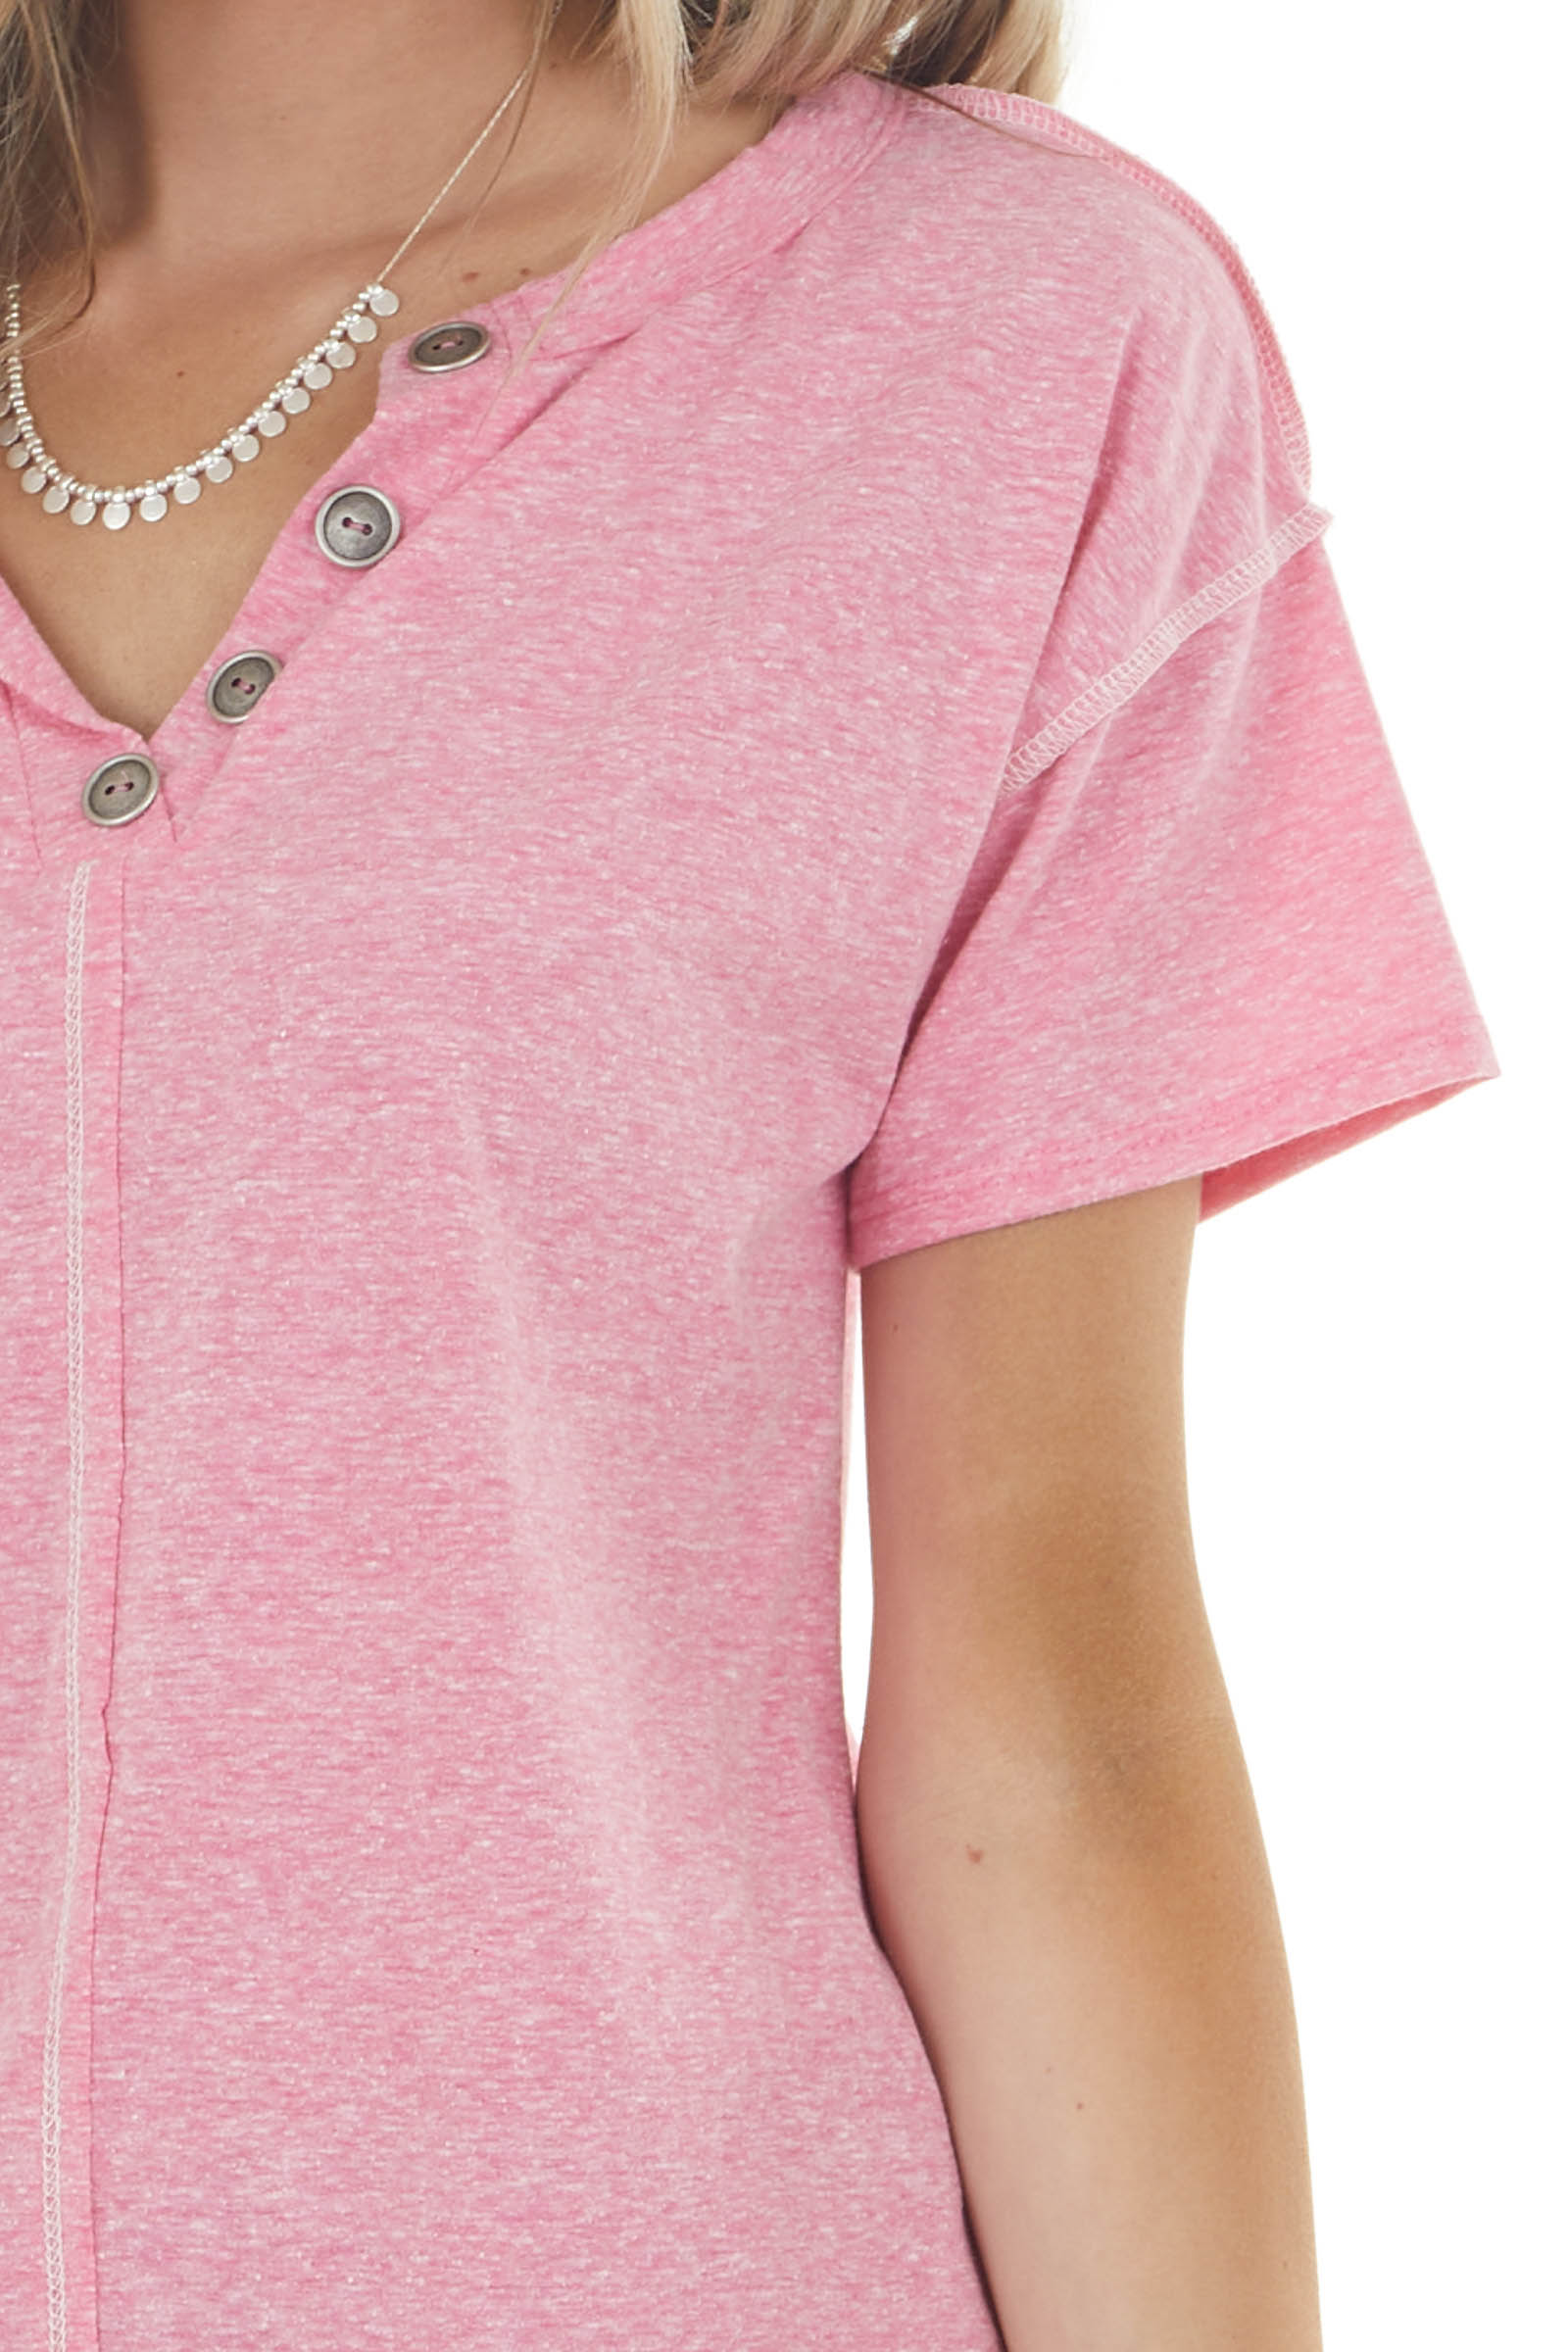 Deep Carnation Short Sleeve V Neck Top with Button Detail